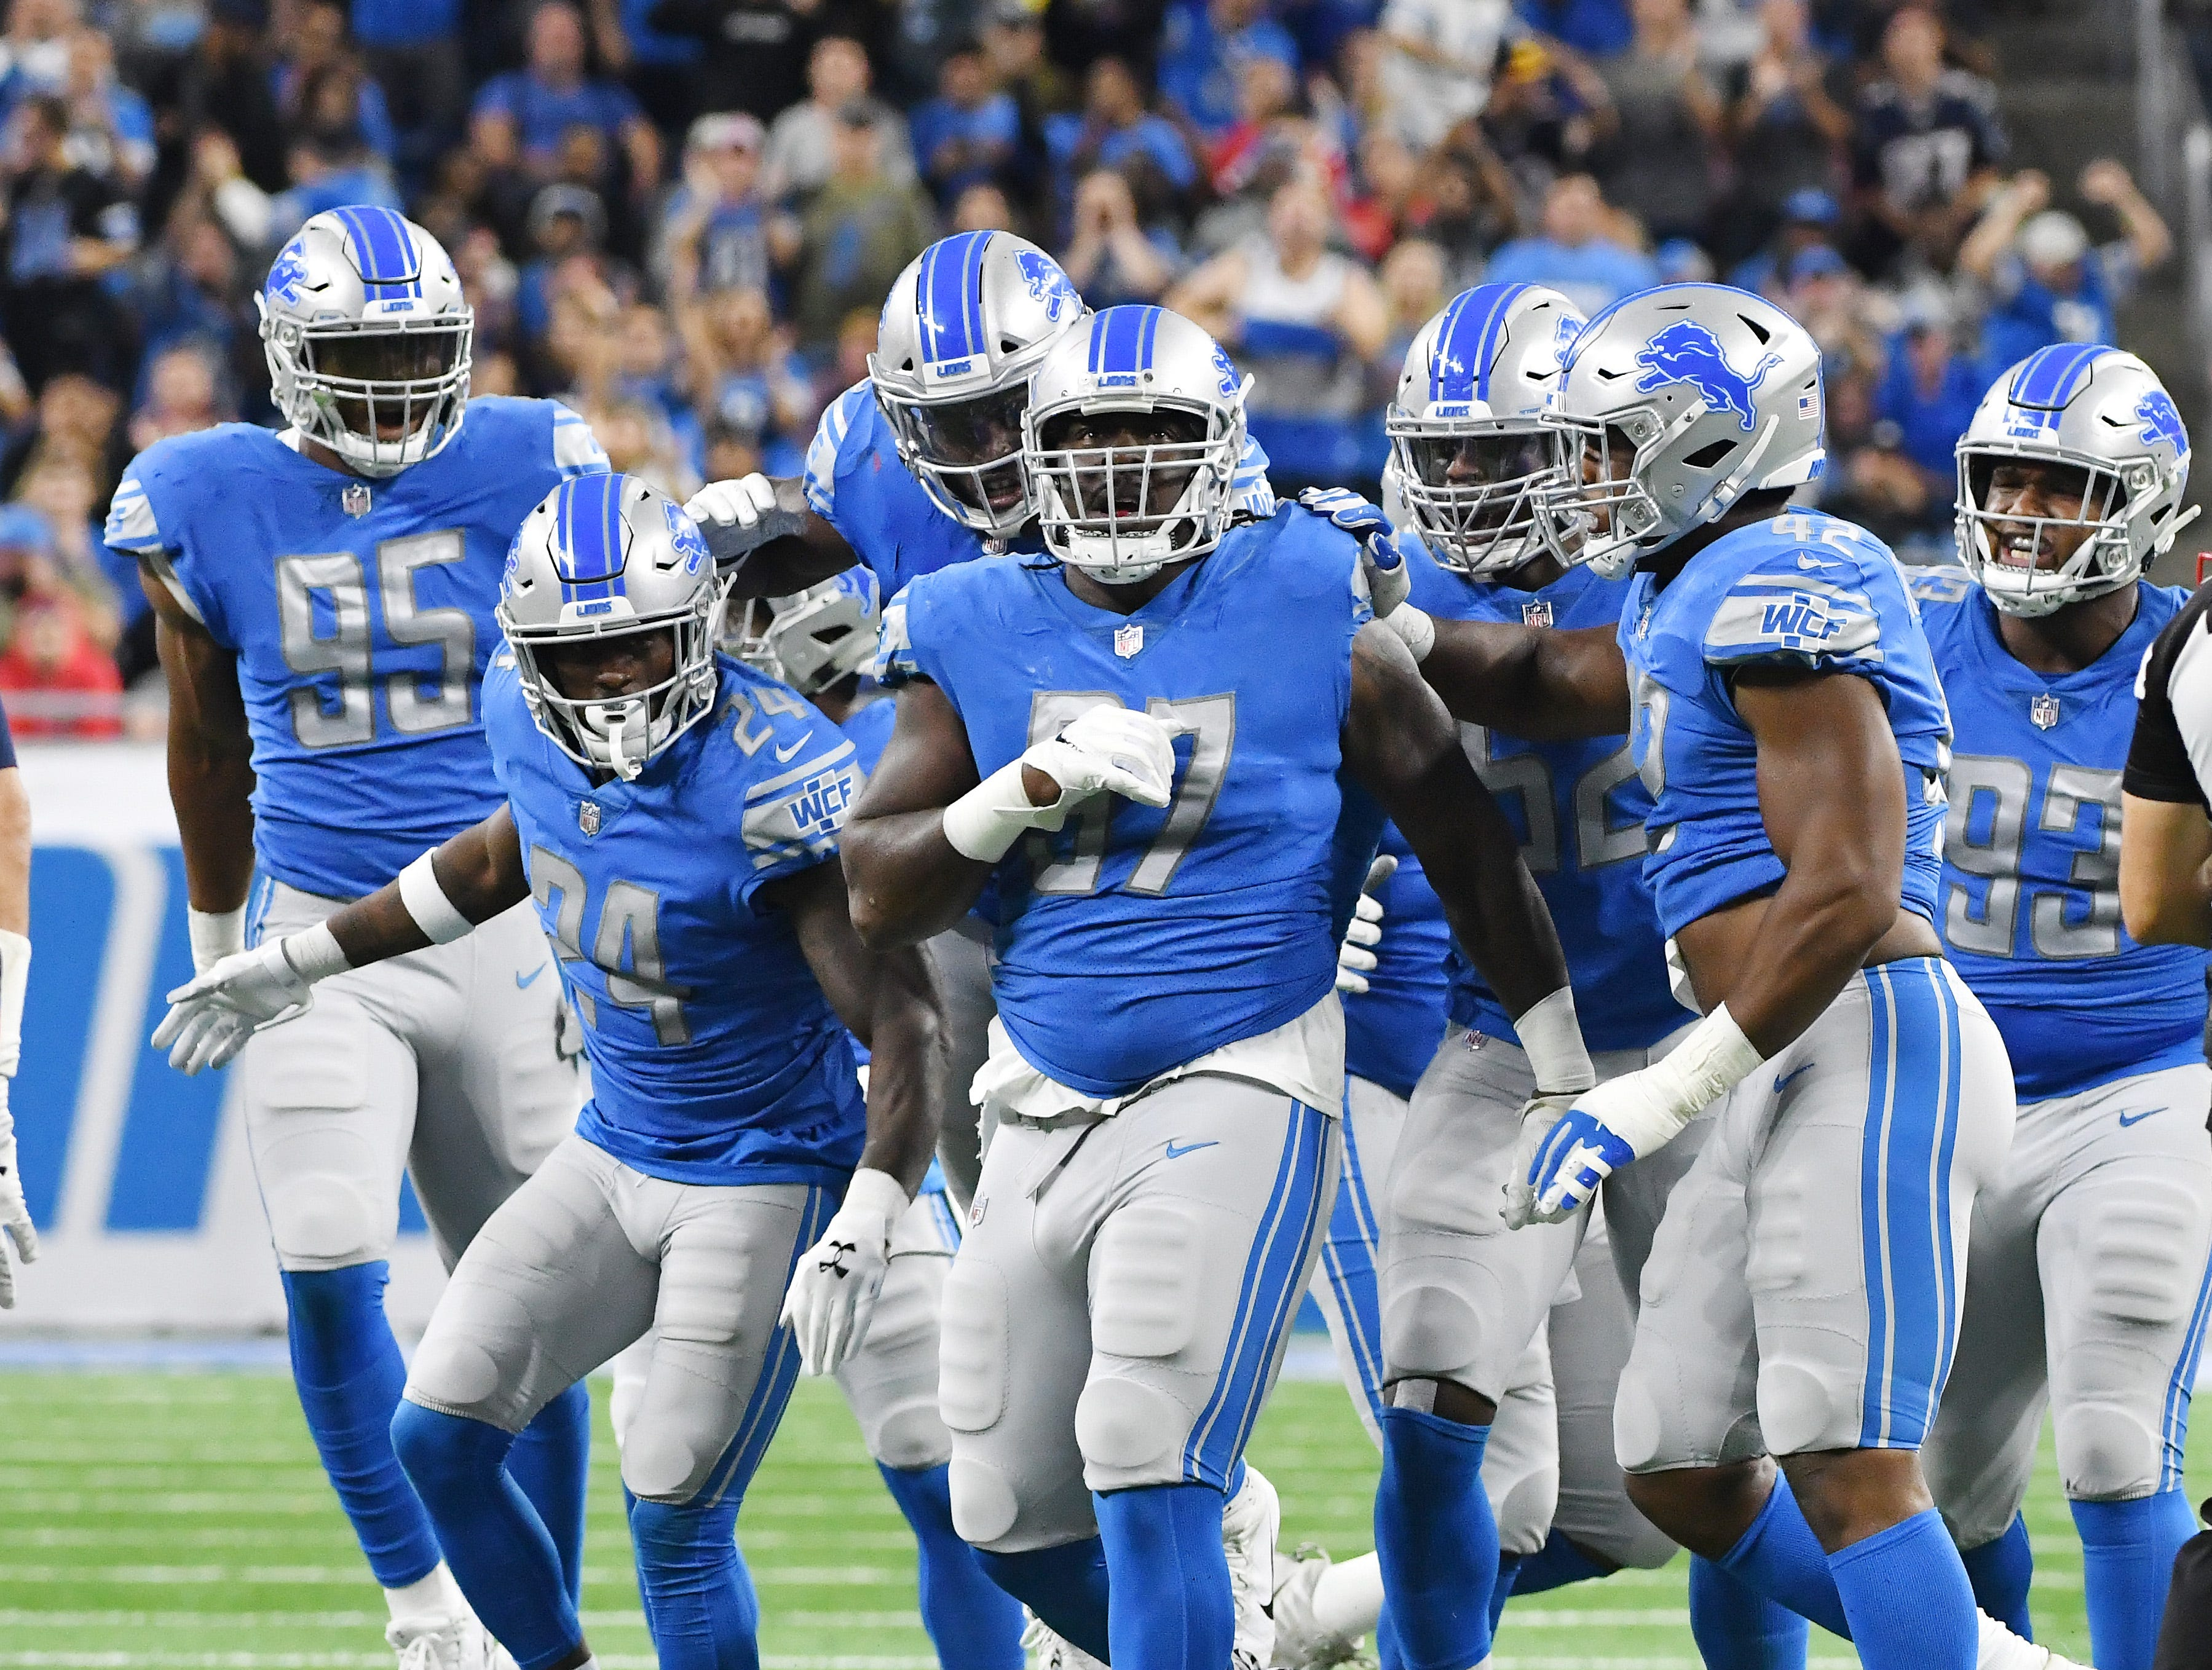 Lions celebrate with teammate Ricky Jean Francois after stopping the Patriots on third down forcing New England to punt in the second quarter.